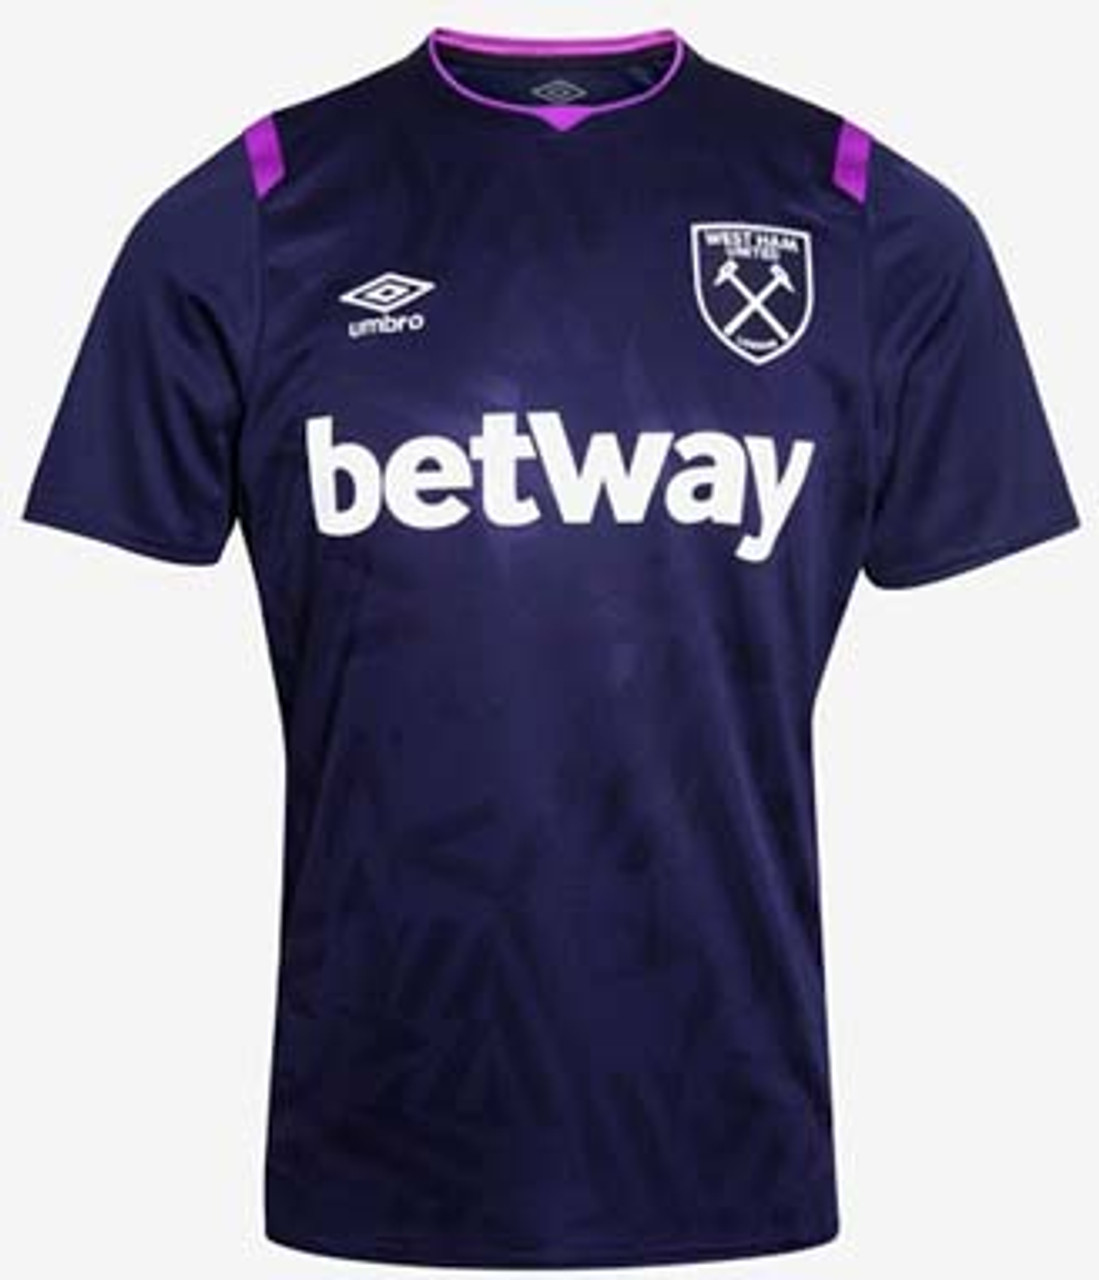 newest 6653d 7a20e UMBRO WEST HAM UNITED 2020 AWAY 3RD JERSEY PURPLE